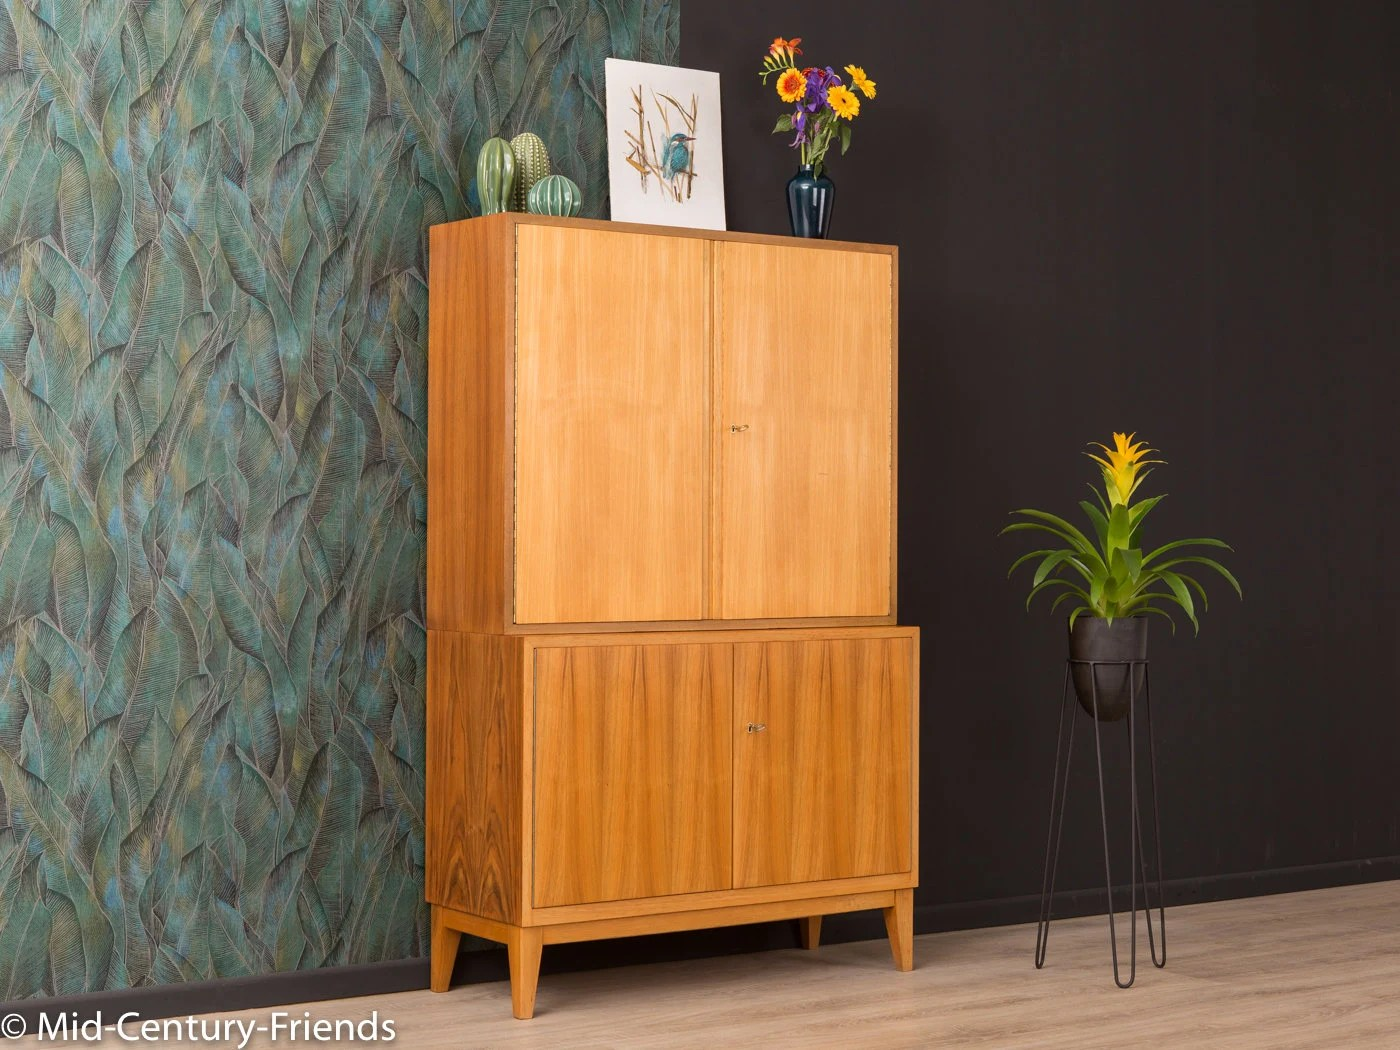 Küchenmöbel Vintage 50s Chest Of Drawers Georg Satink Wk Möbel Vintage 804032